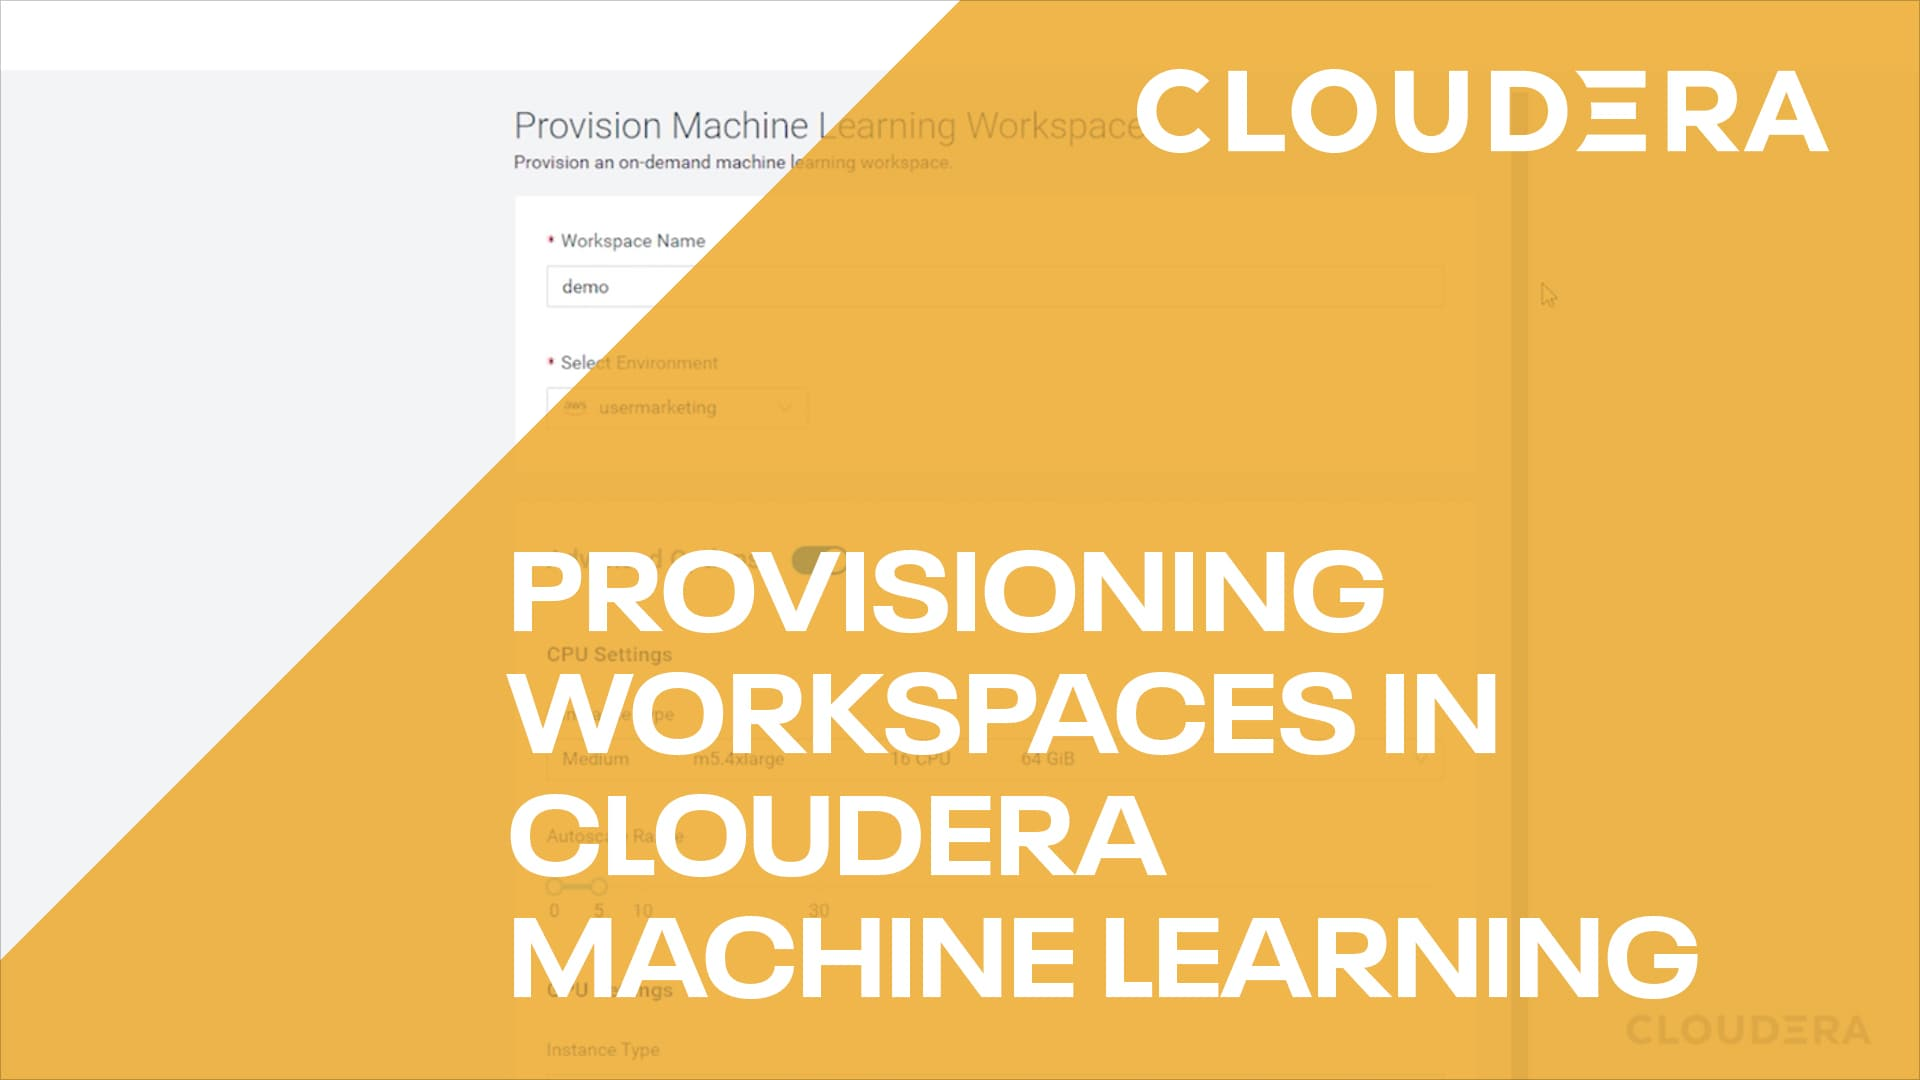 Provisioning Workspaces in Cloudera Machine Learning